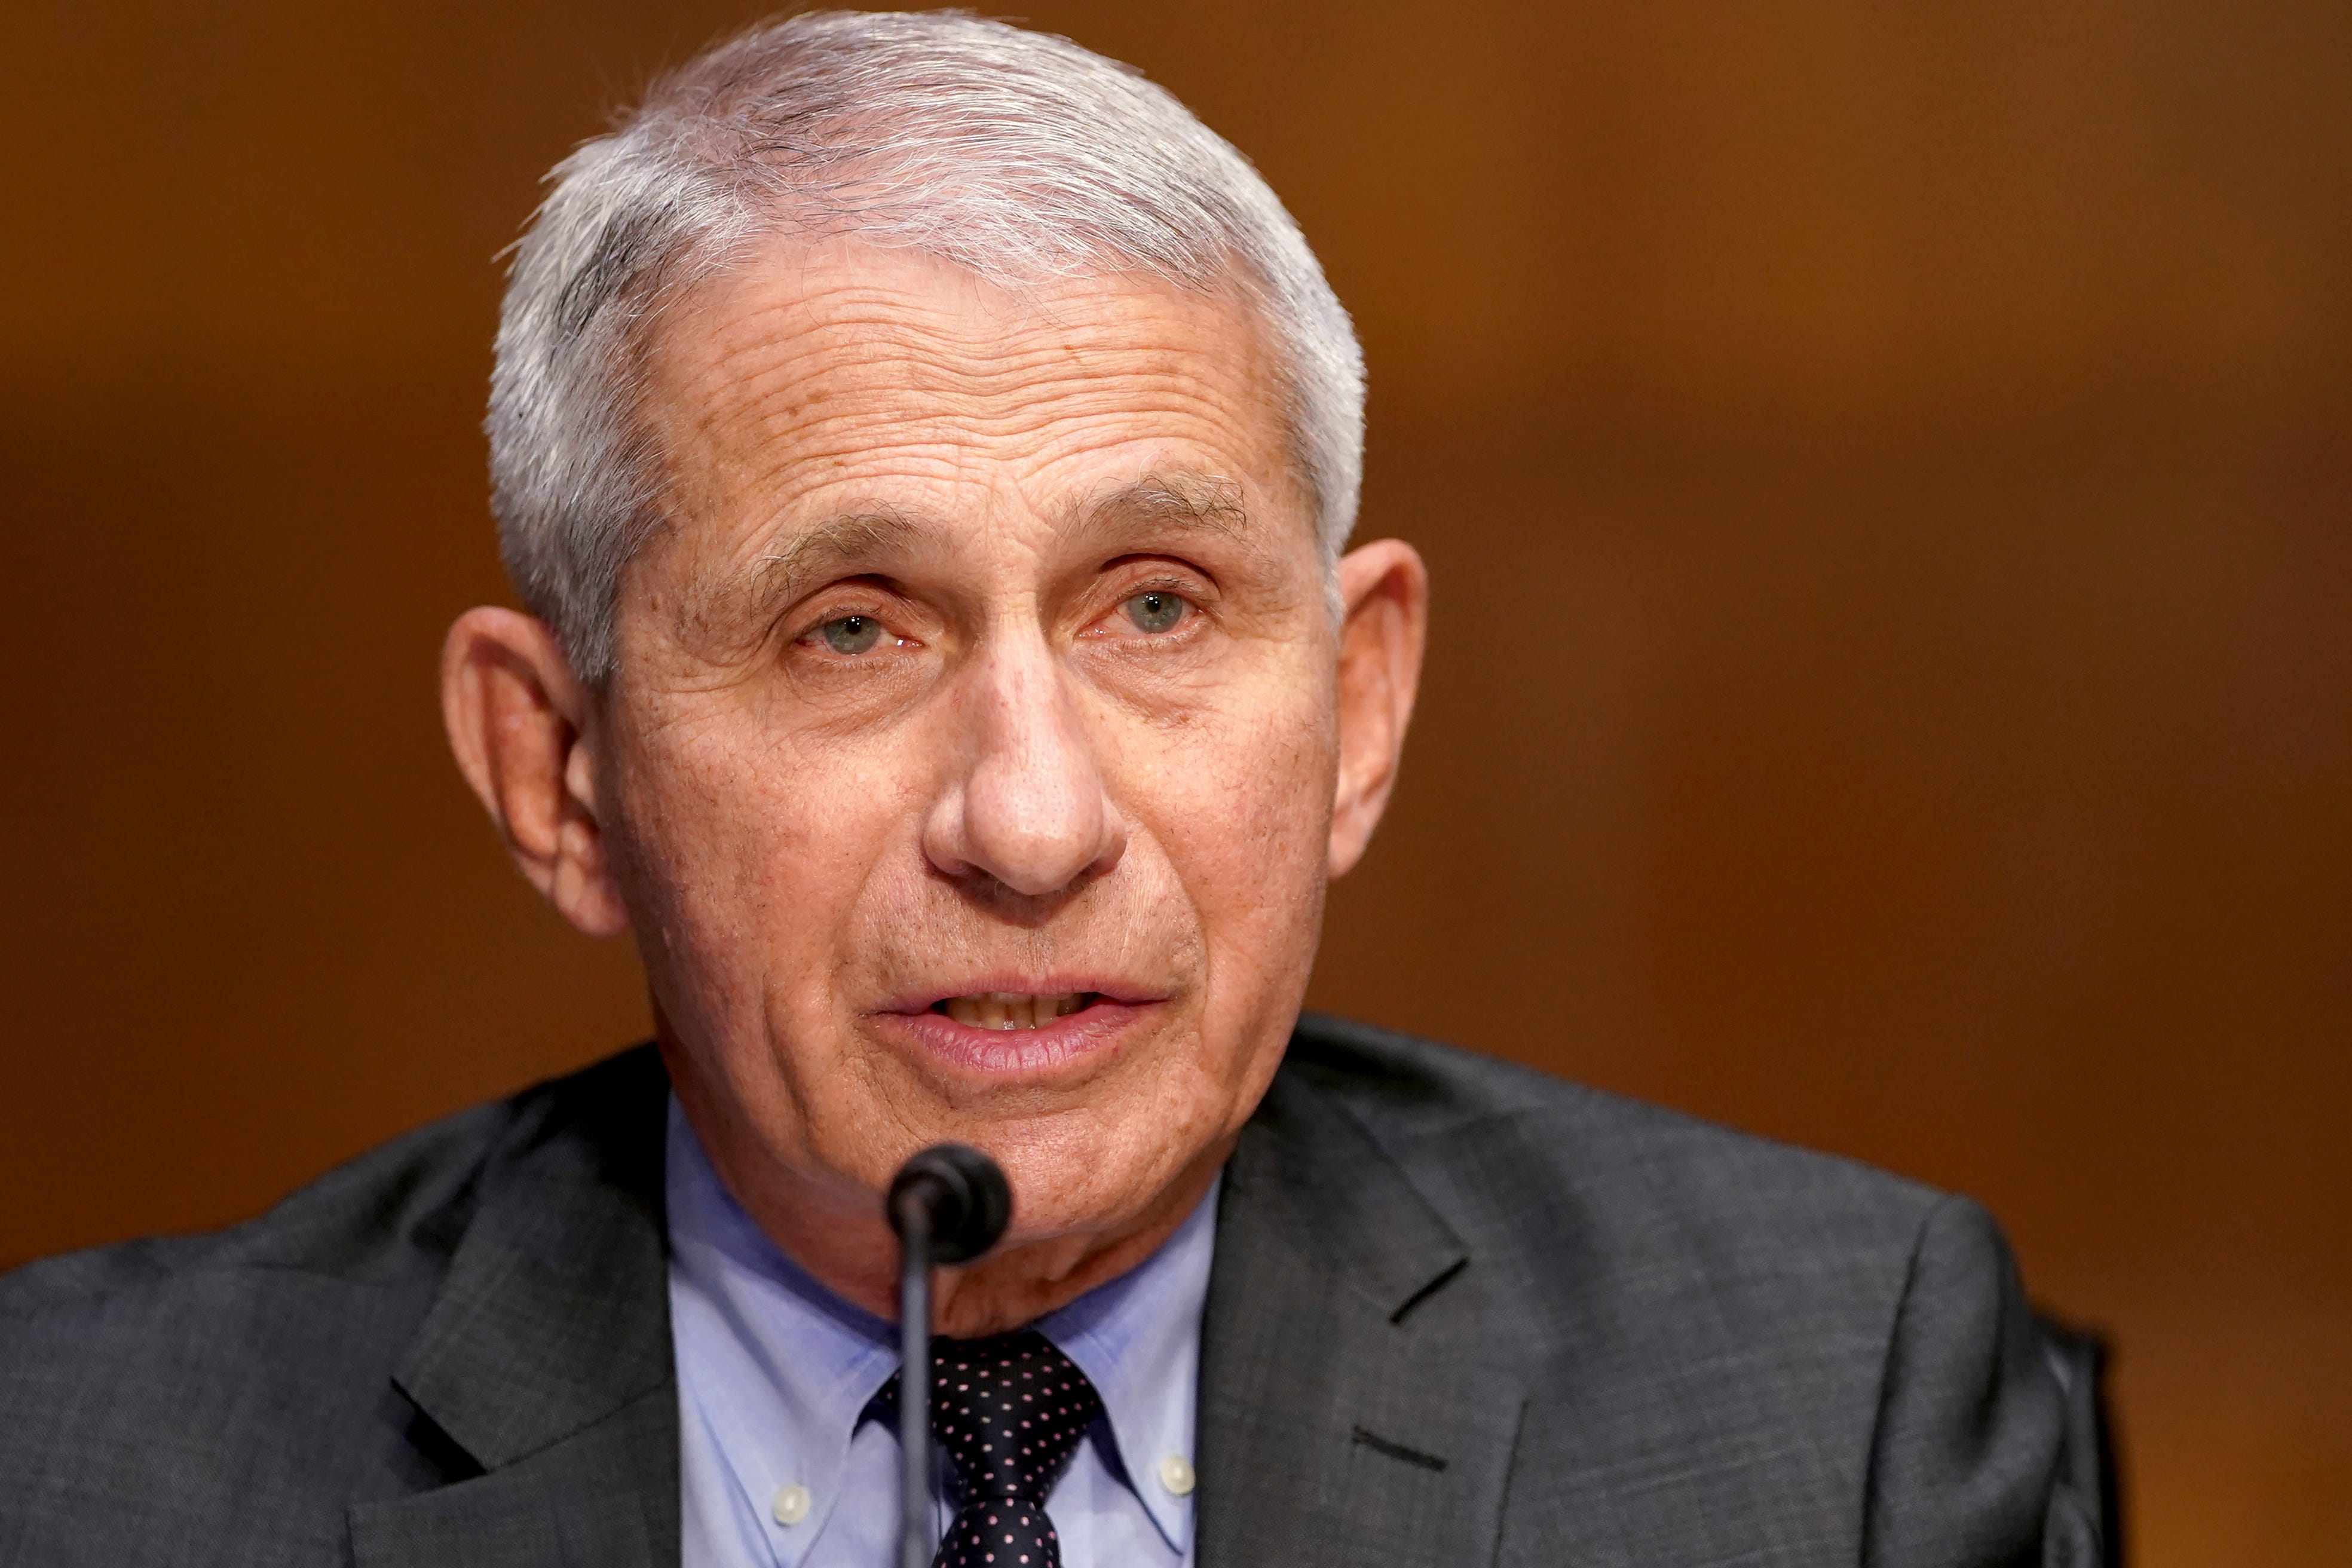 Fauci says more 'pain and suffering' still ahead 2